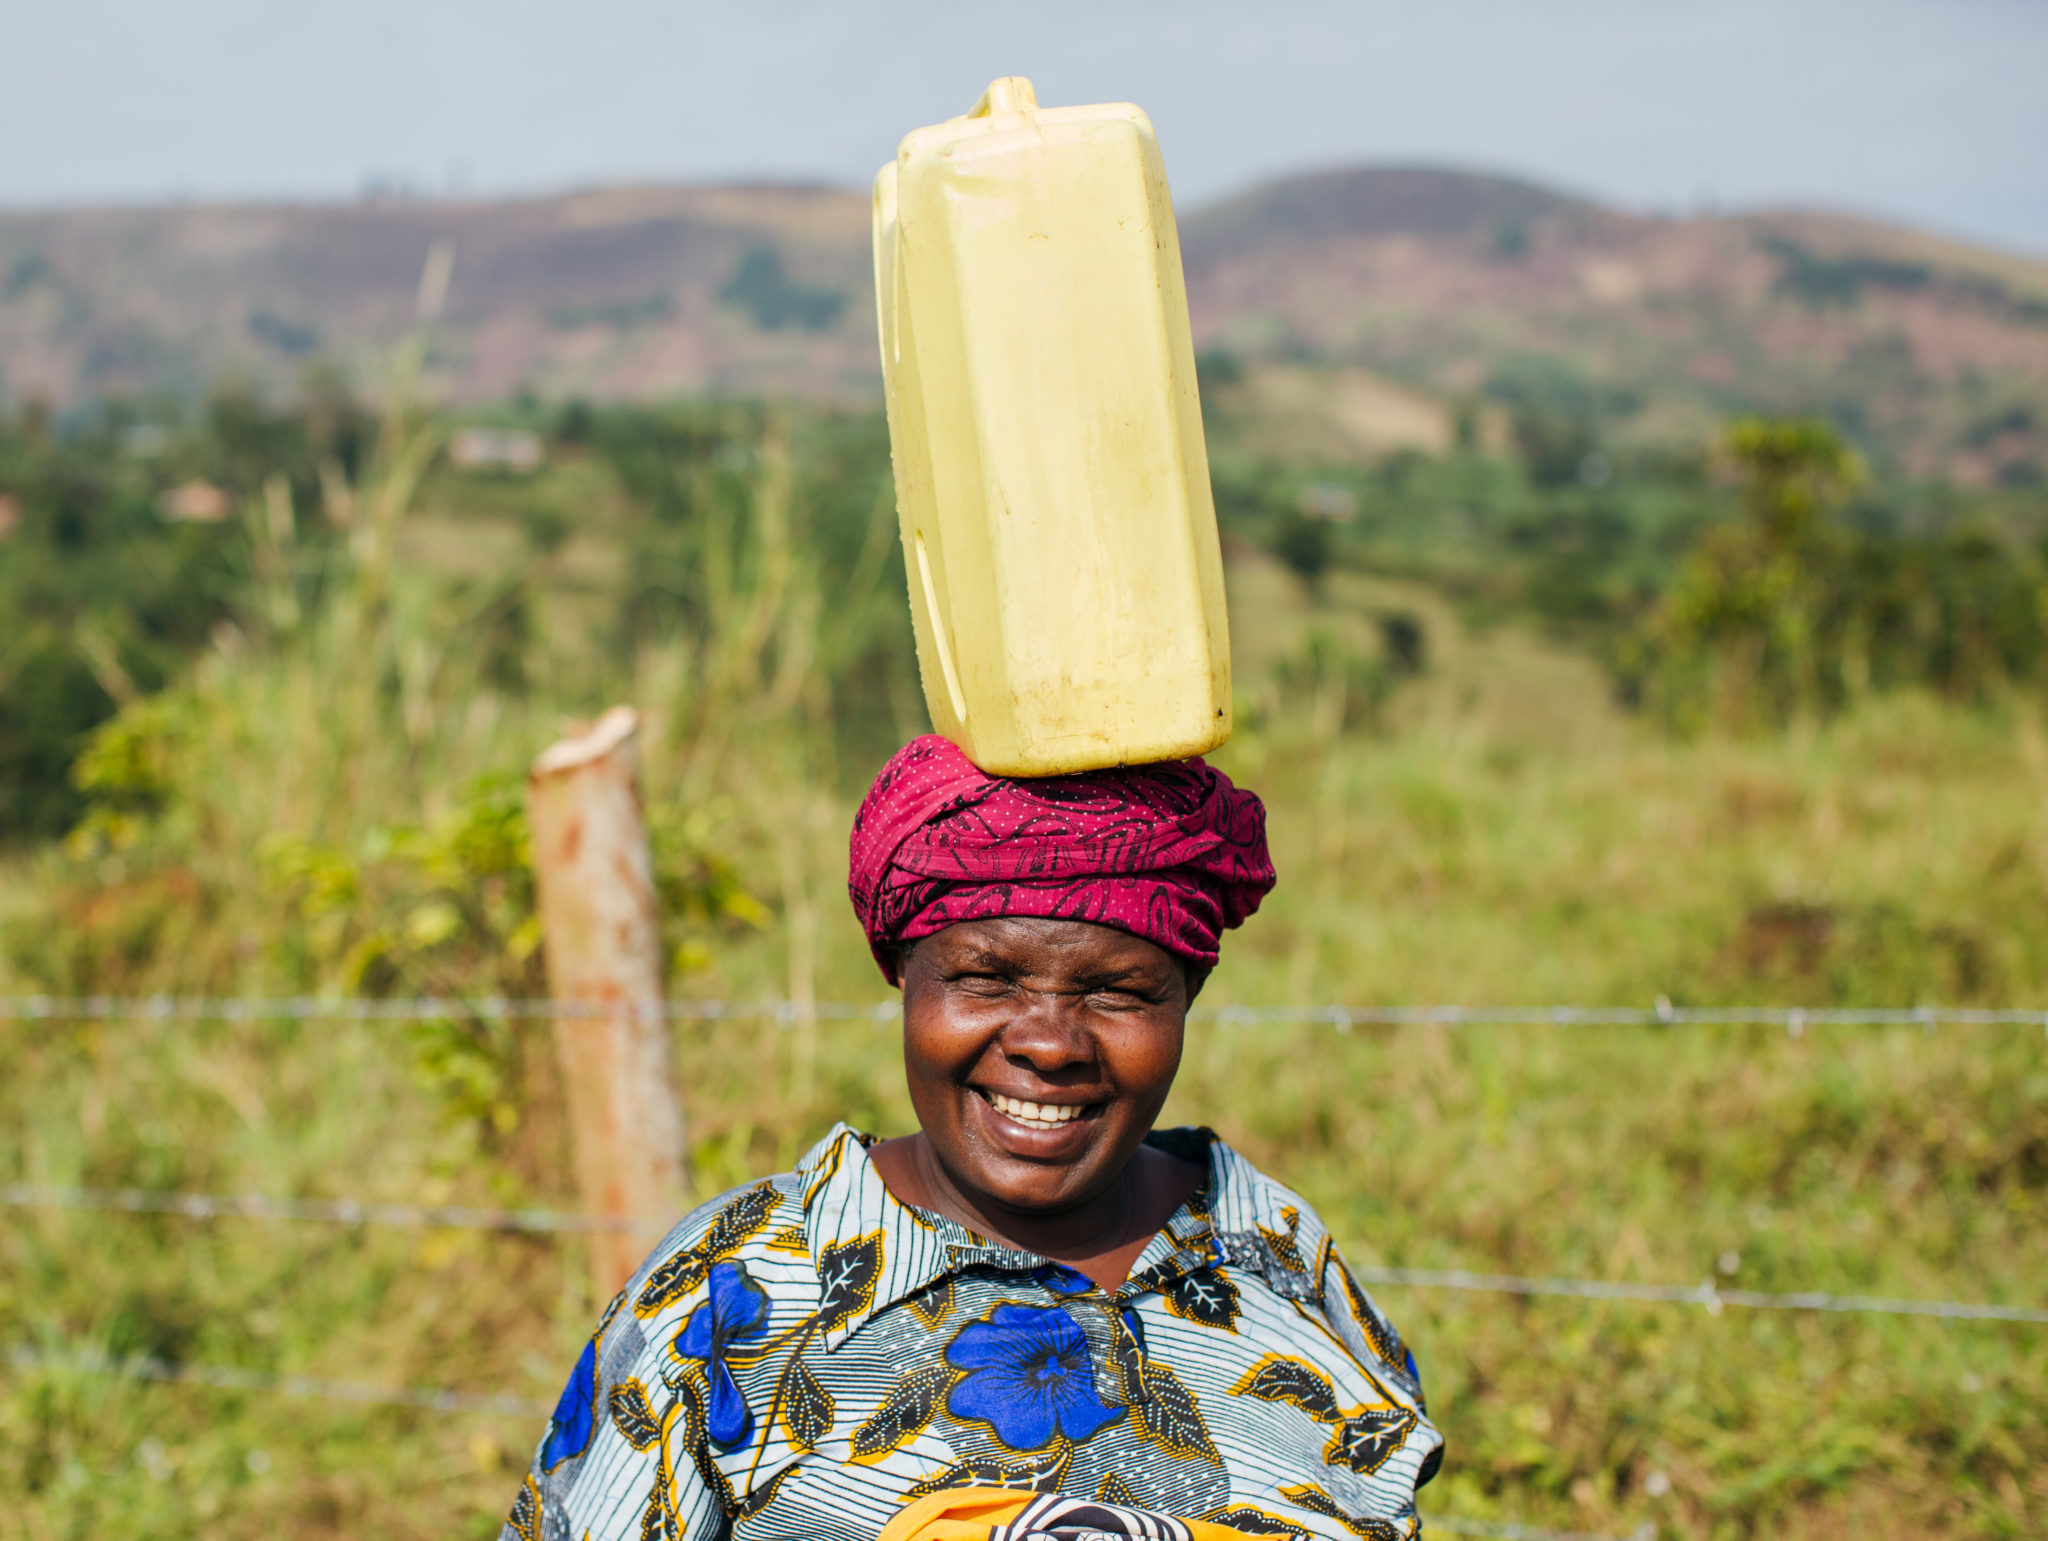 lady with water jug on head | The Strategy to Achieve SDG 6 | Water For People